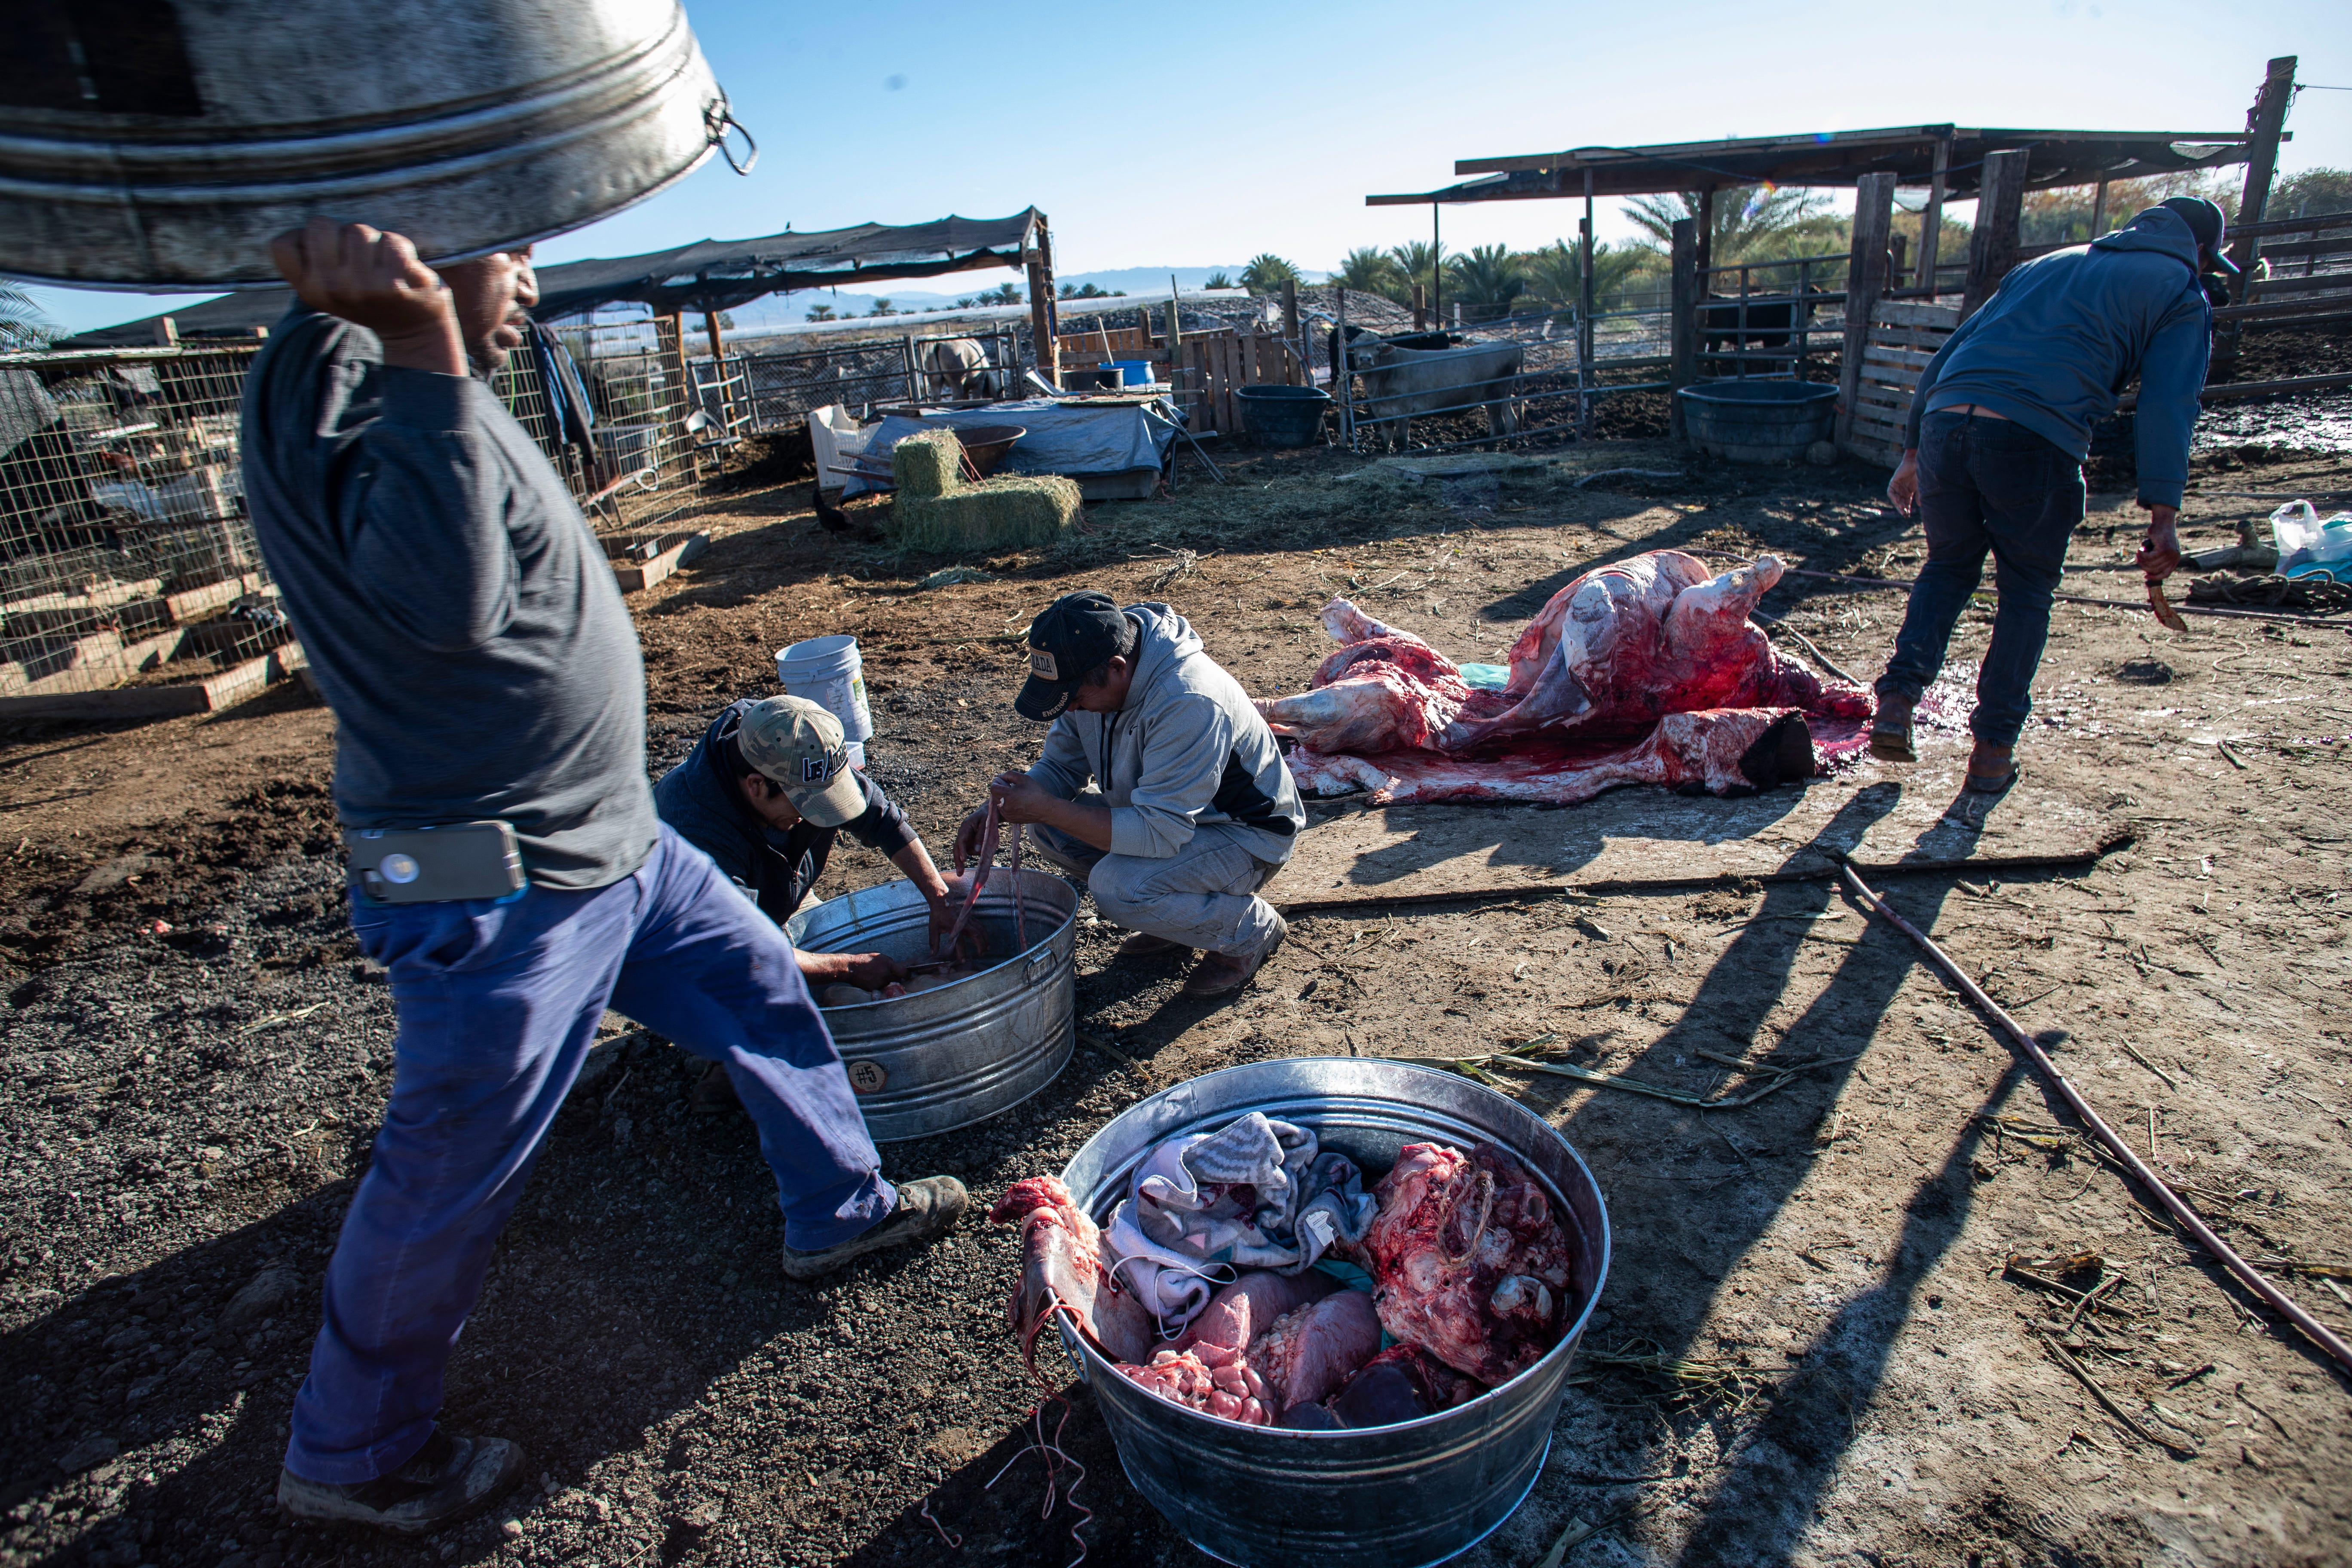 A cow is prepared by members of the Purépecha  community in Thermal, Calif. The cow will be used to feed hundreds of members of the community who will gather over the course of five days.